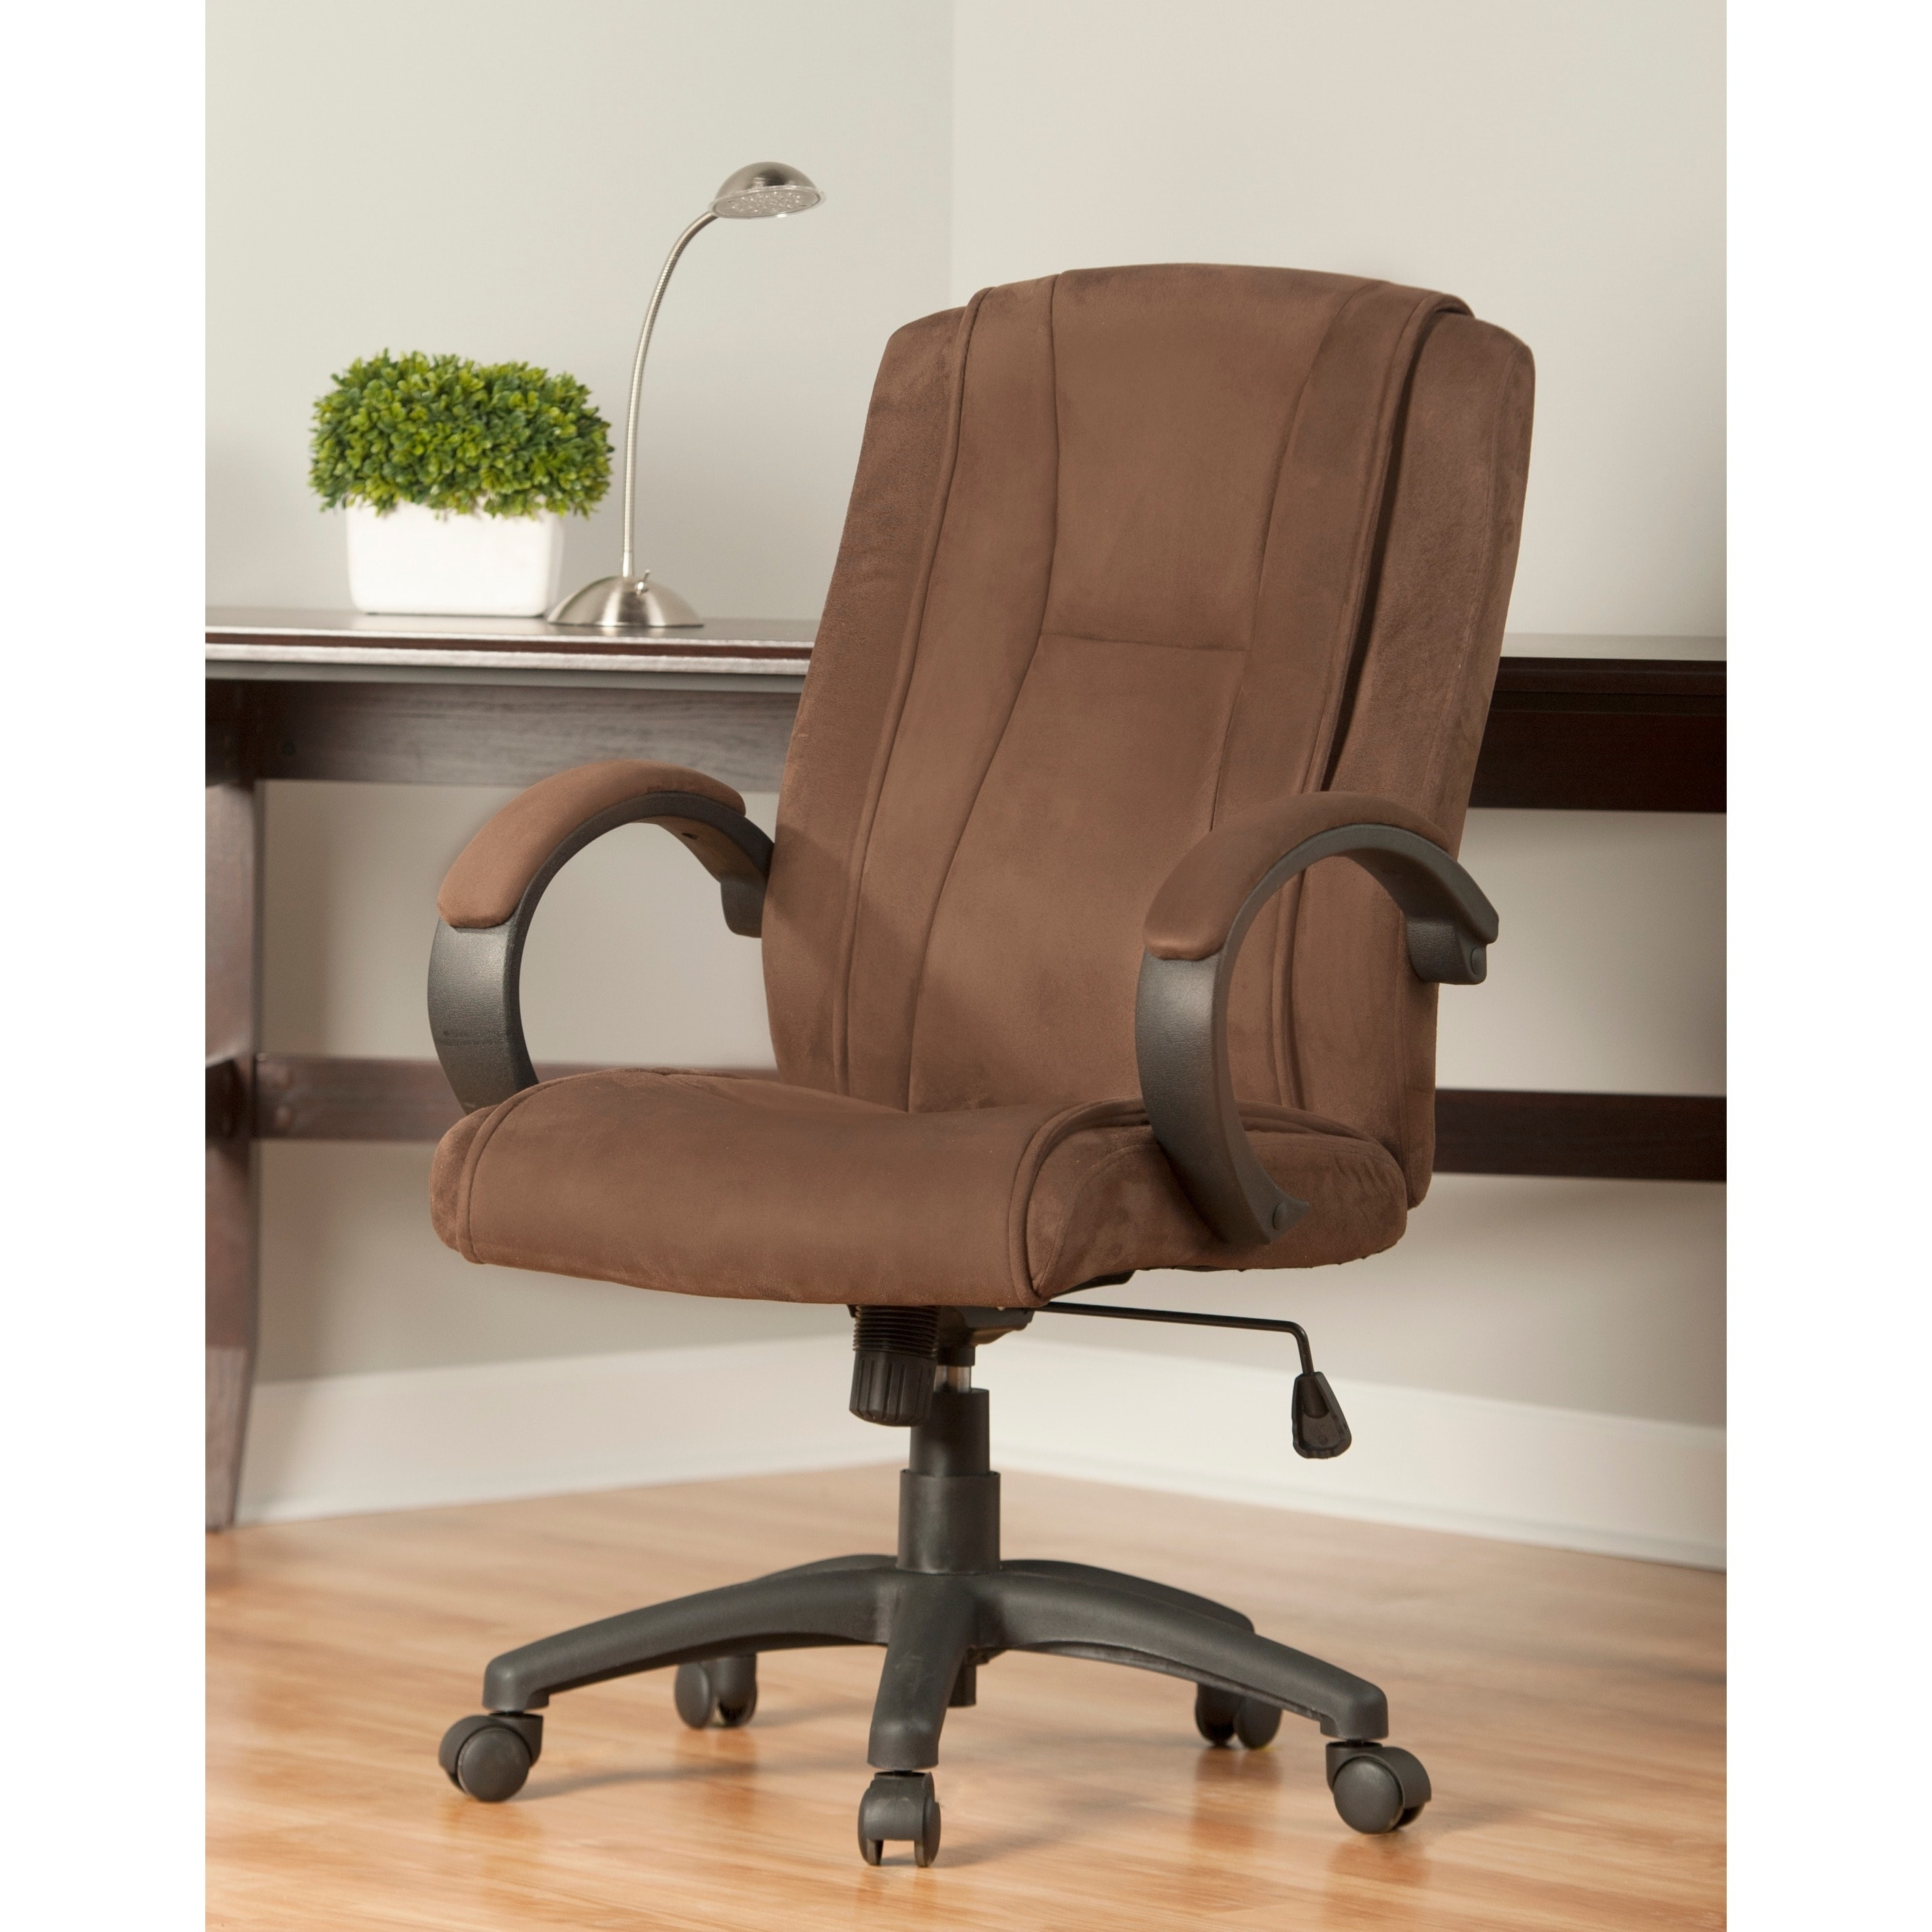 2019 Light Beige Microfiber Executive Office Chairs Regarding Comfort Products Padded Microsuede Office Chair – Free Shipping (View 5 of 20)